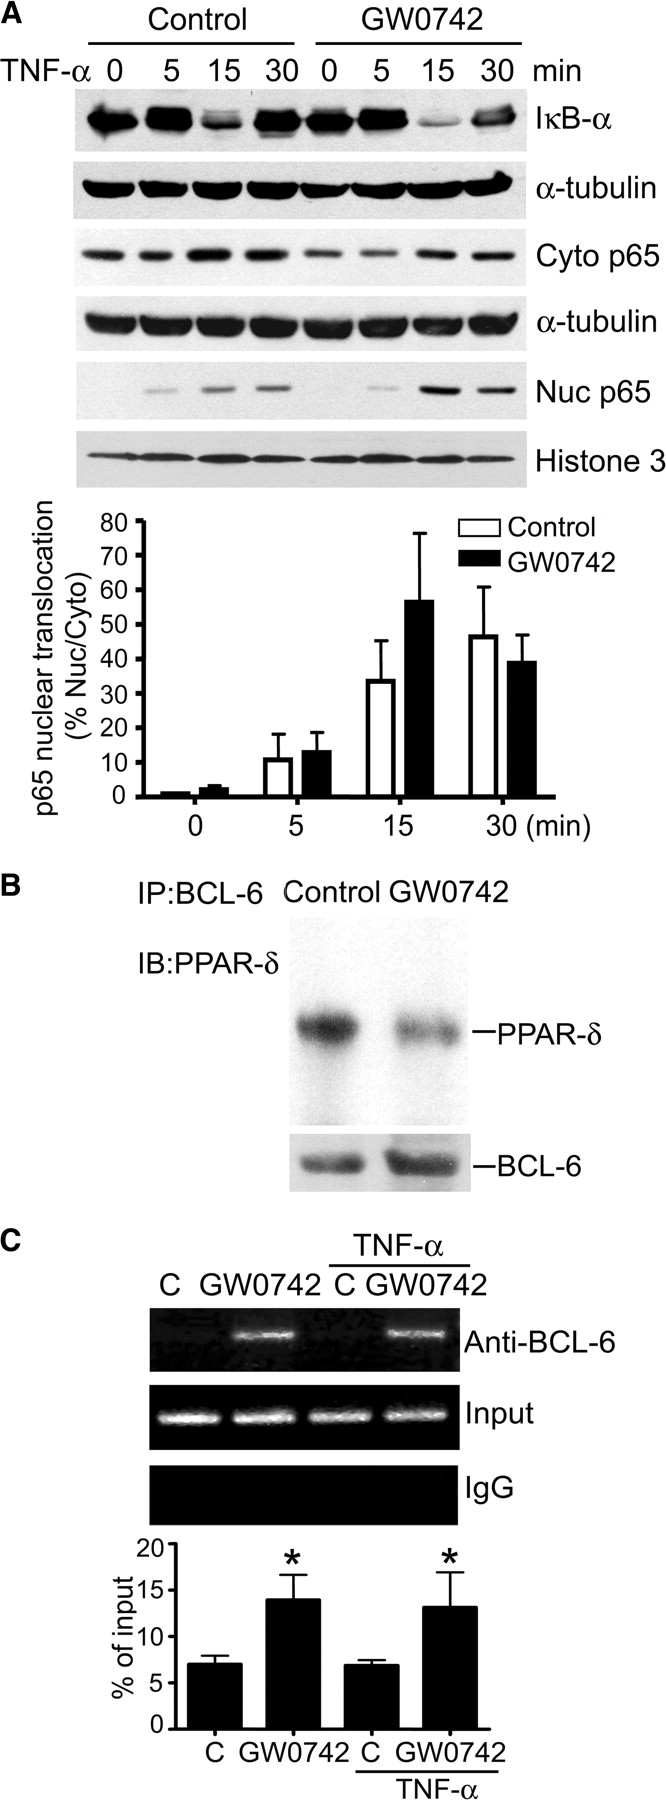 Suppression of Pro-inflammatory Adhesion Molecules by PPAR-δ